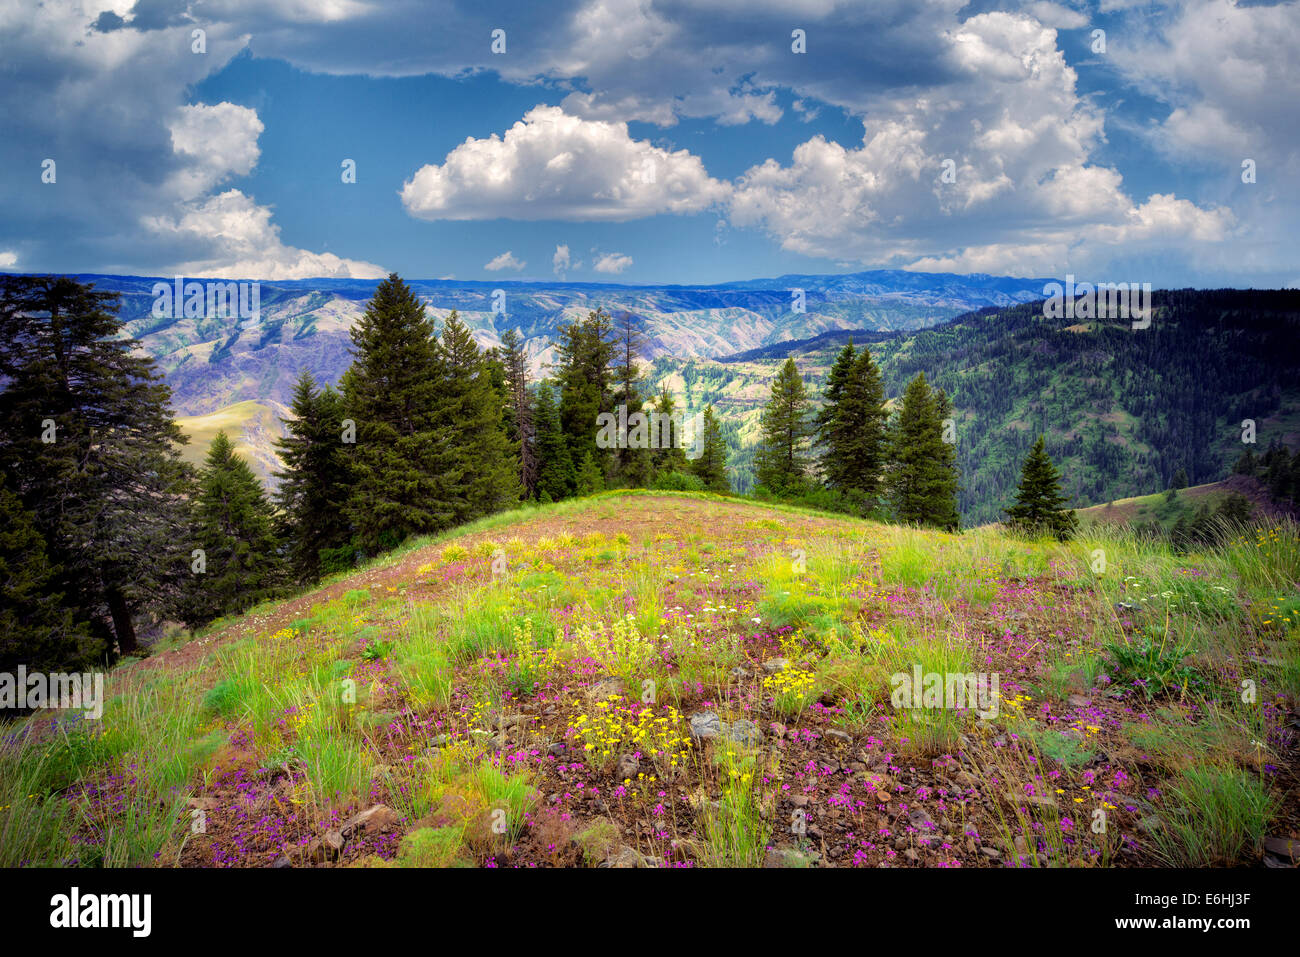 Fleurs sauvages et des nuages. Hell's Canyon Overlook, New York Photo Stock